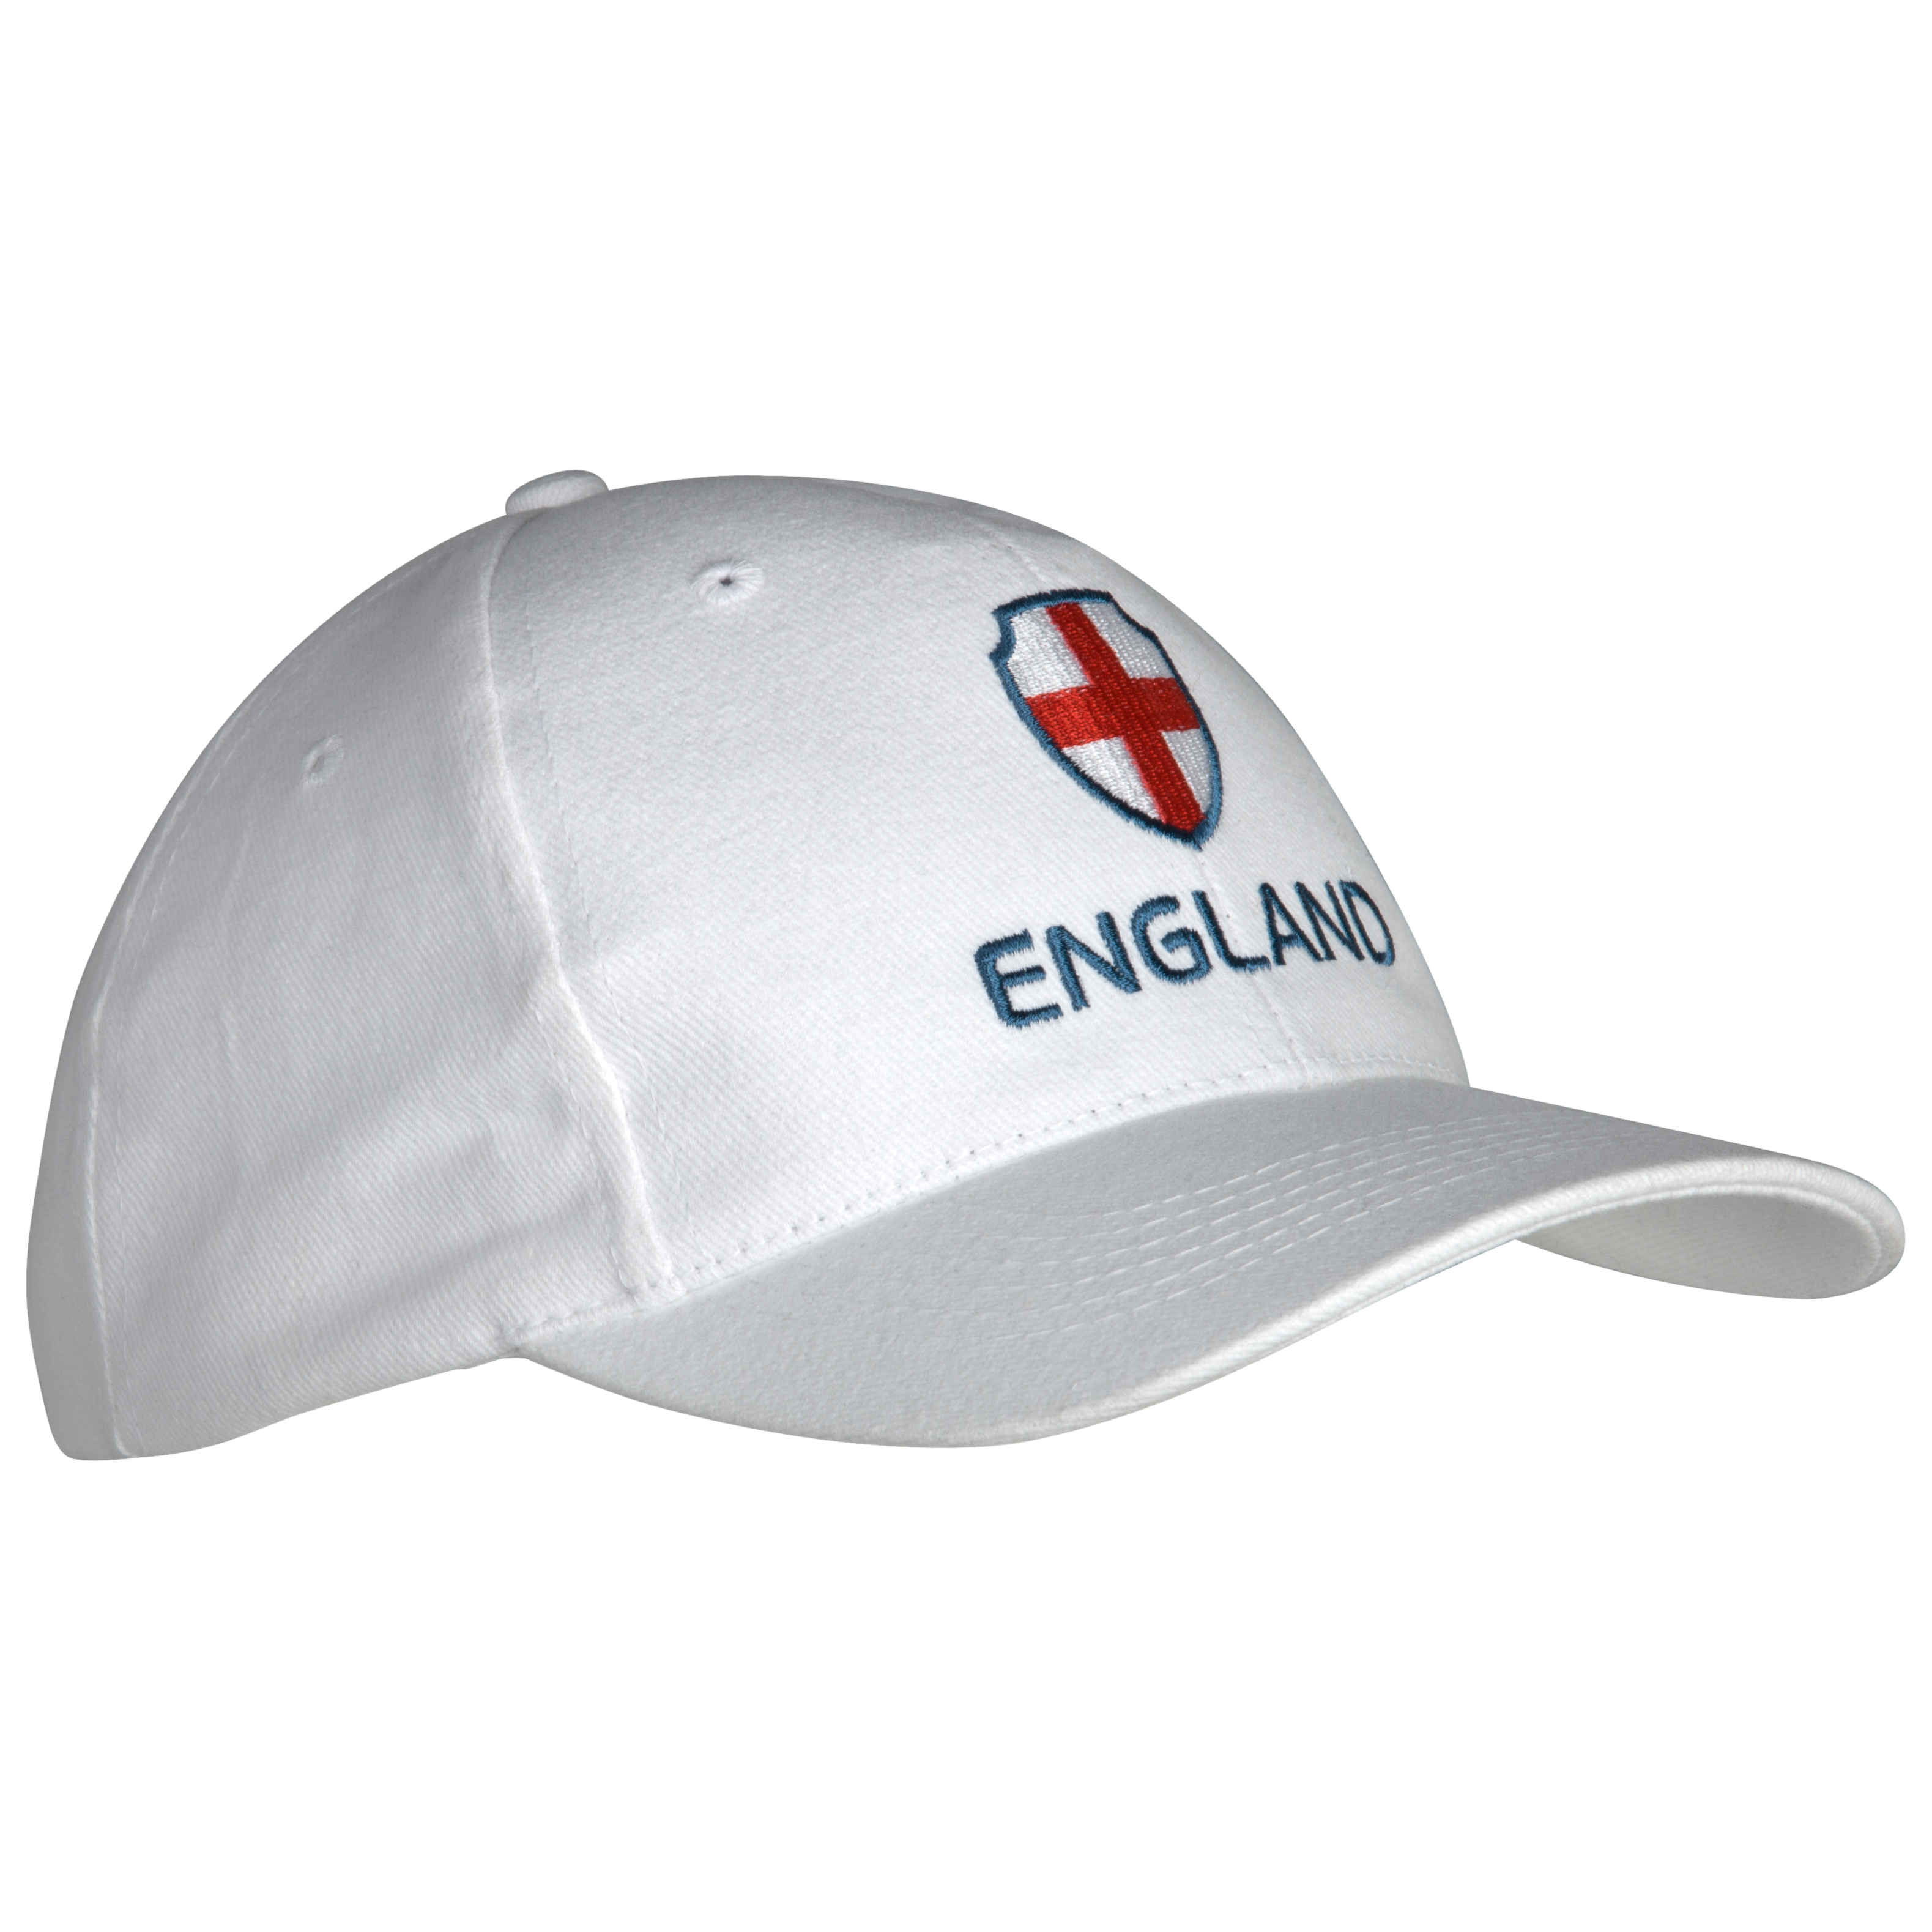 England Cap - White/Blue/Red